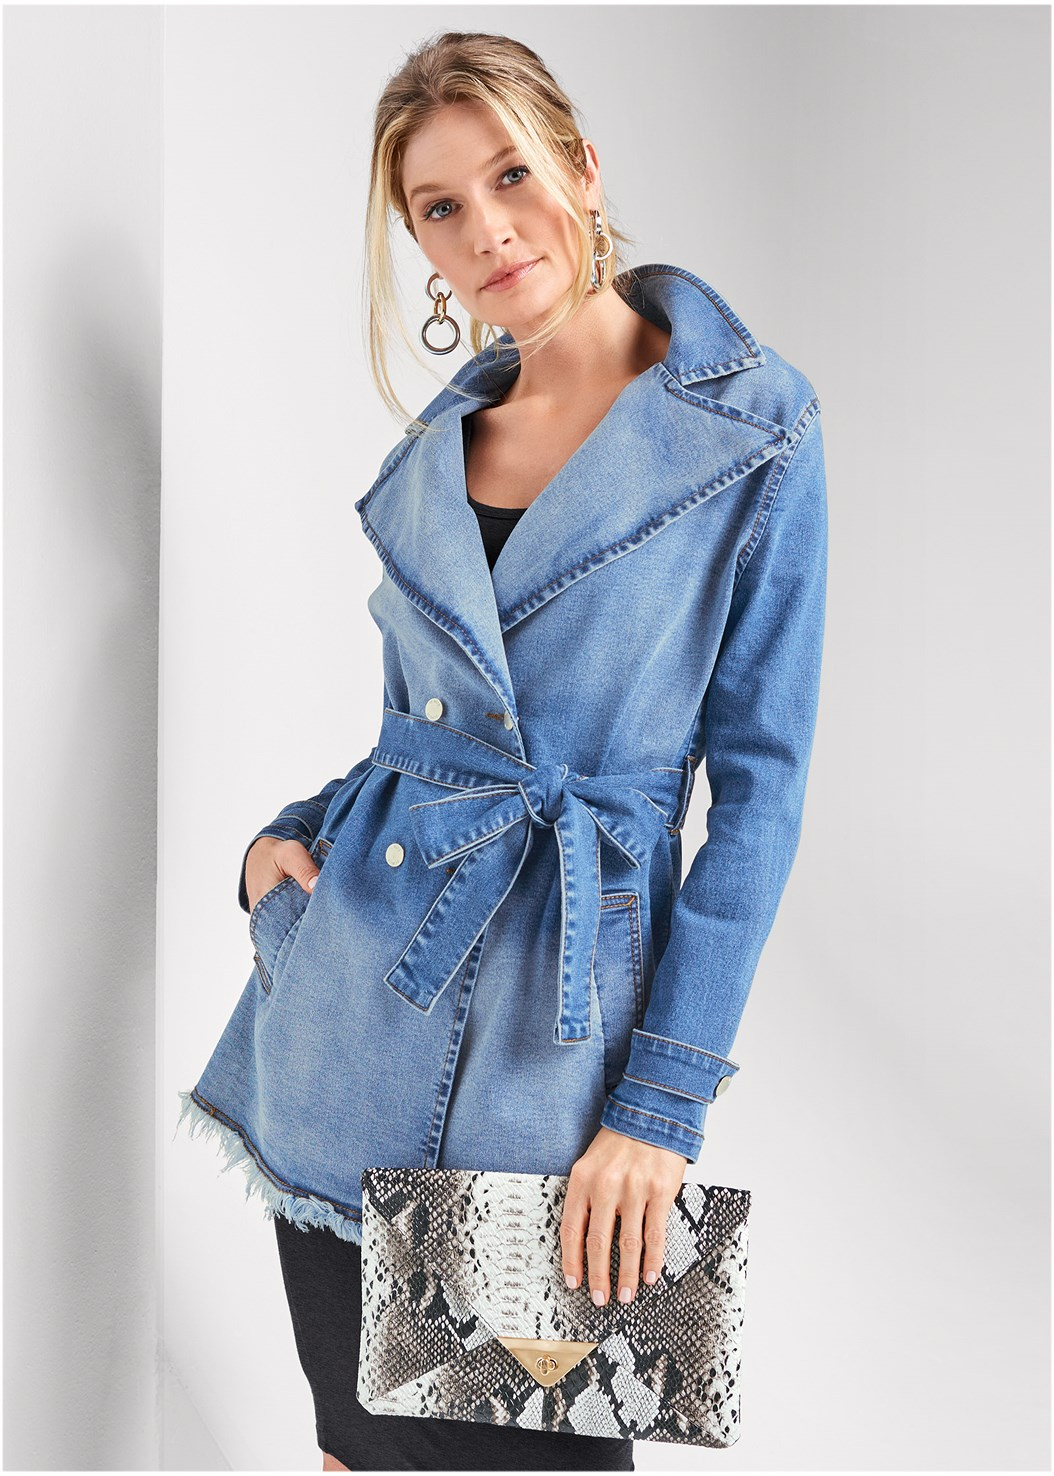 Denim Trench Coat,Sleeveless Ruched Bodycon Midi Dress,Animal Lace Demi Bra,Circle Detail Booties,Mix Metal Link Earrings,Python Clutch